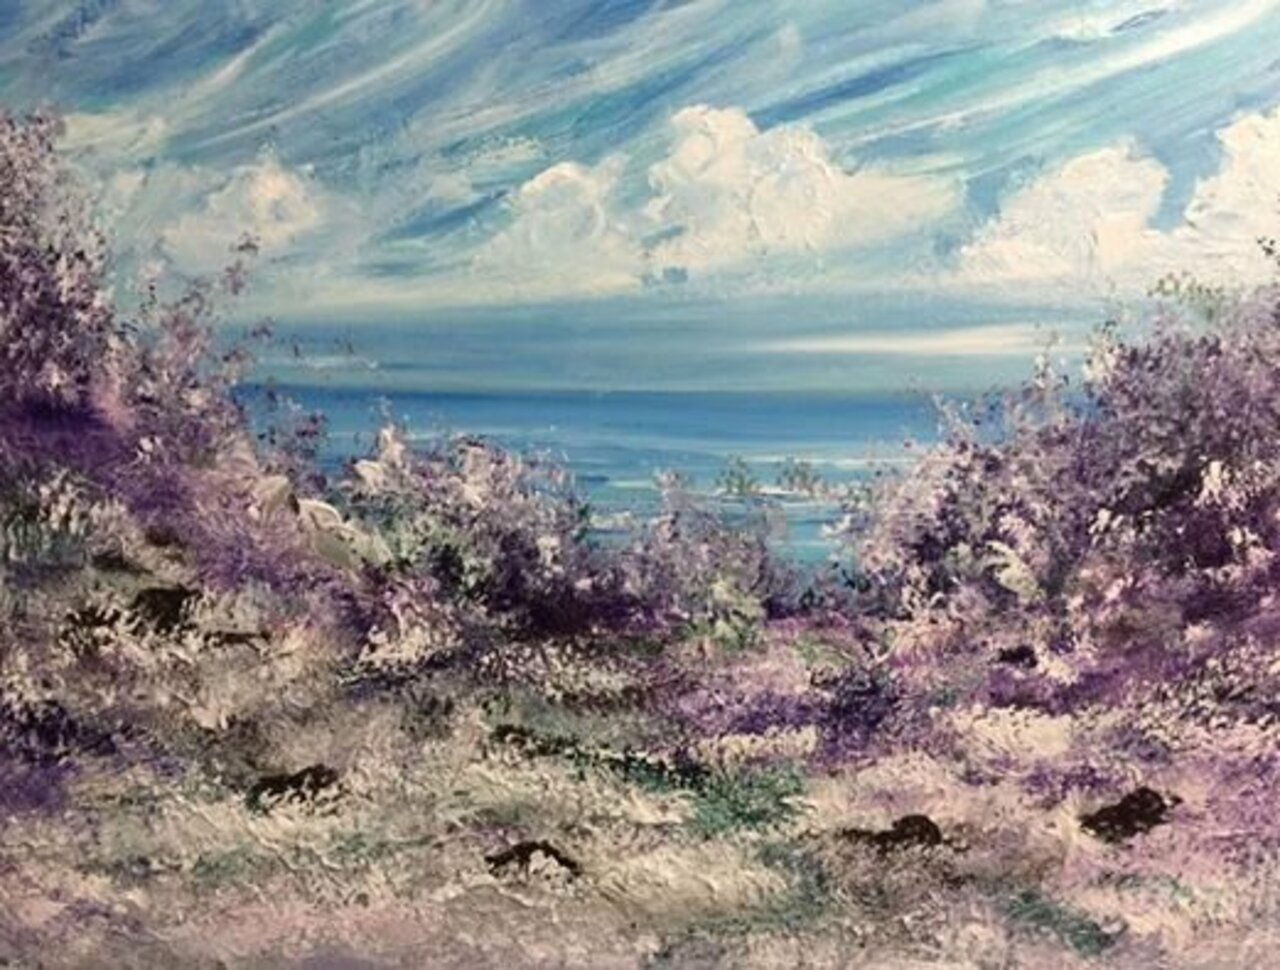 'At Peace' by Joanna DeRitis #art https://t.co/U0W8QckgIH